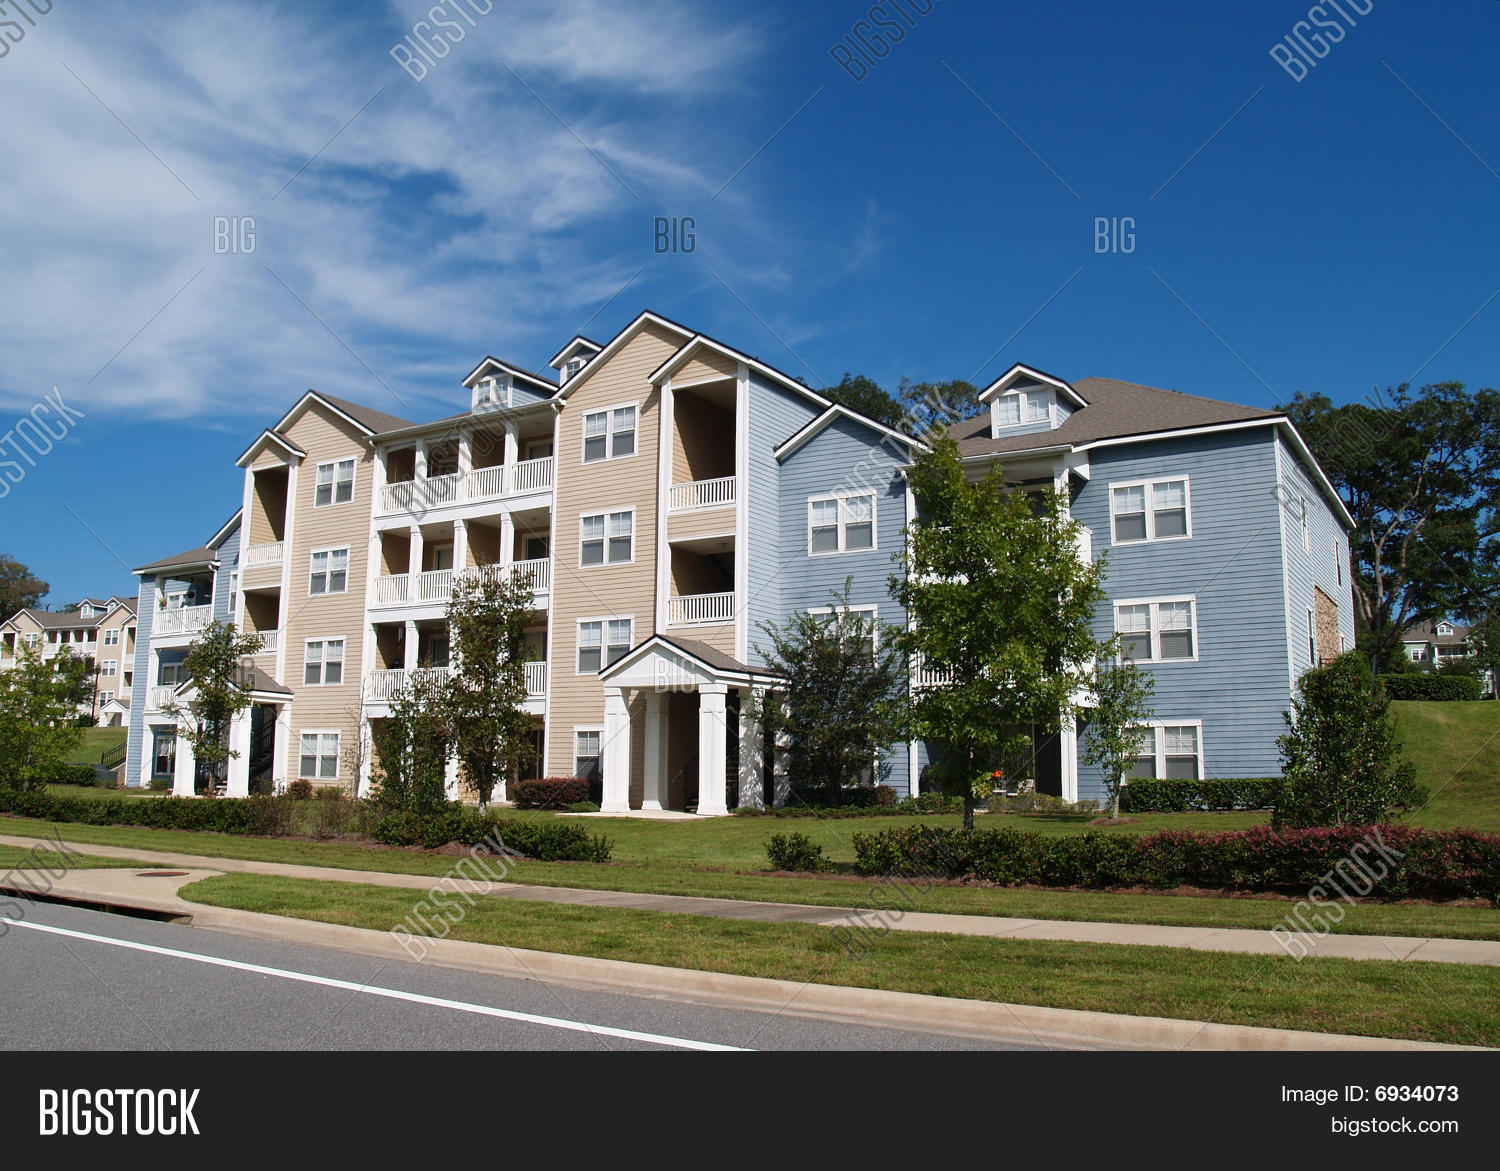 Three Story Condos Apartments Or Townhomes Stock Photo